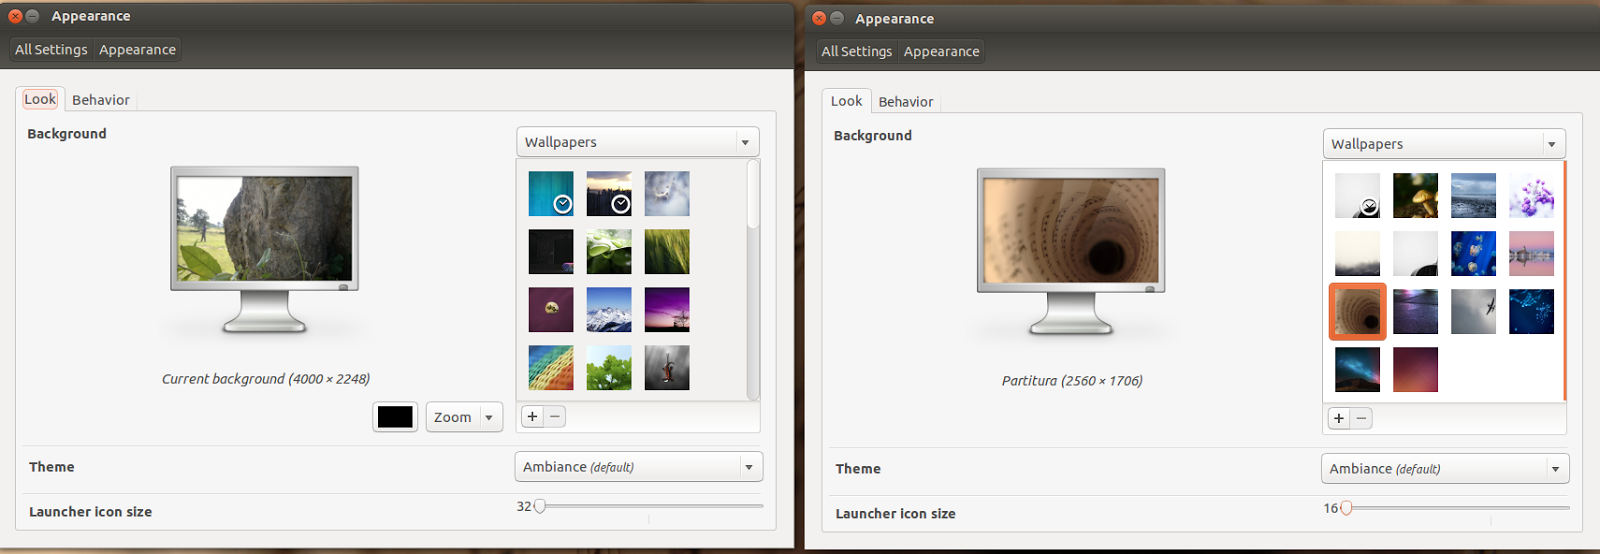 Smaller unity launcher icons in Ubuntu 14.04 Trusty Tahr